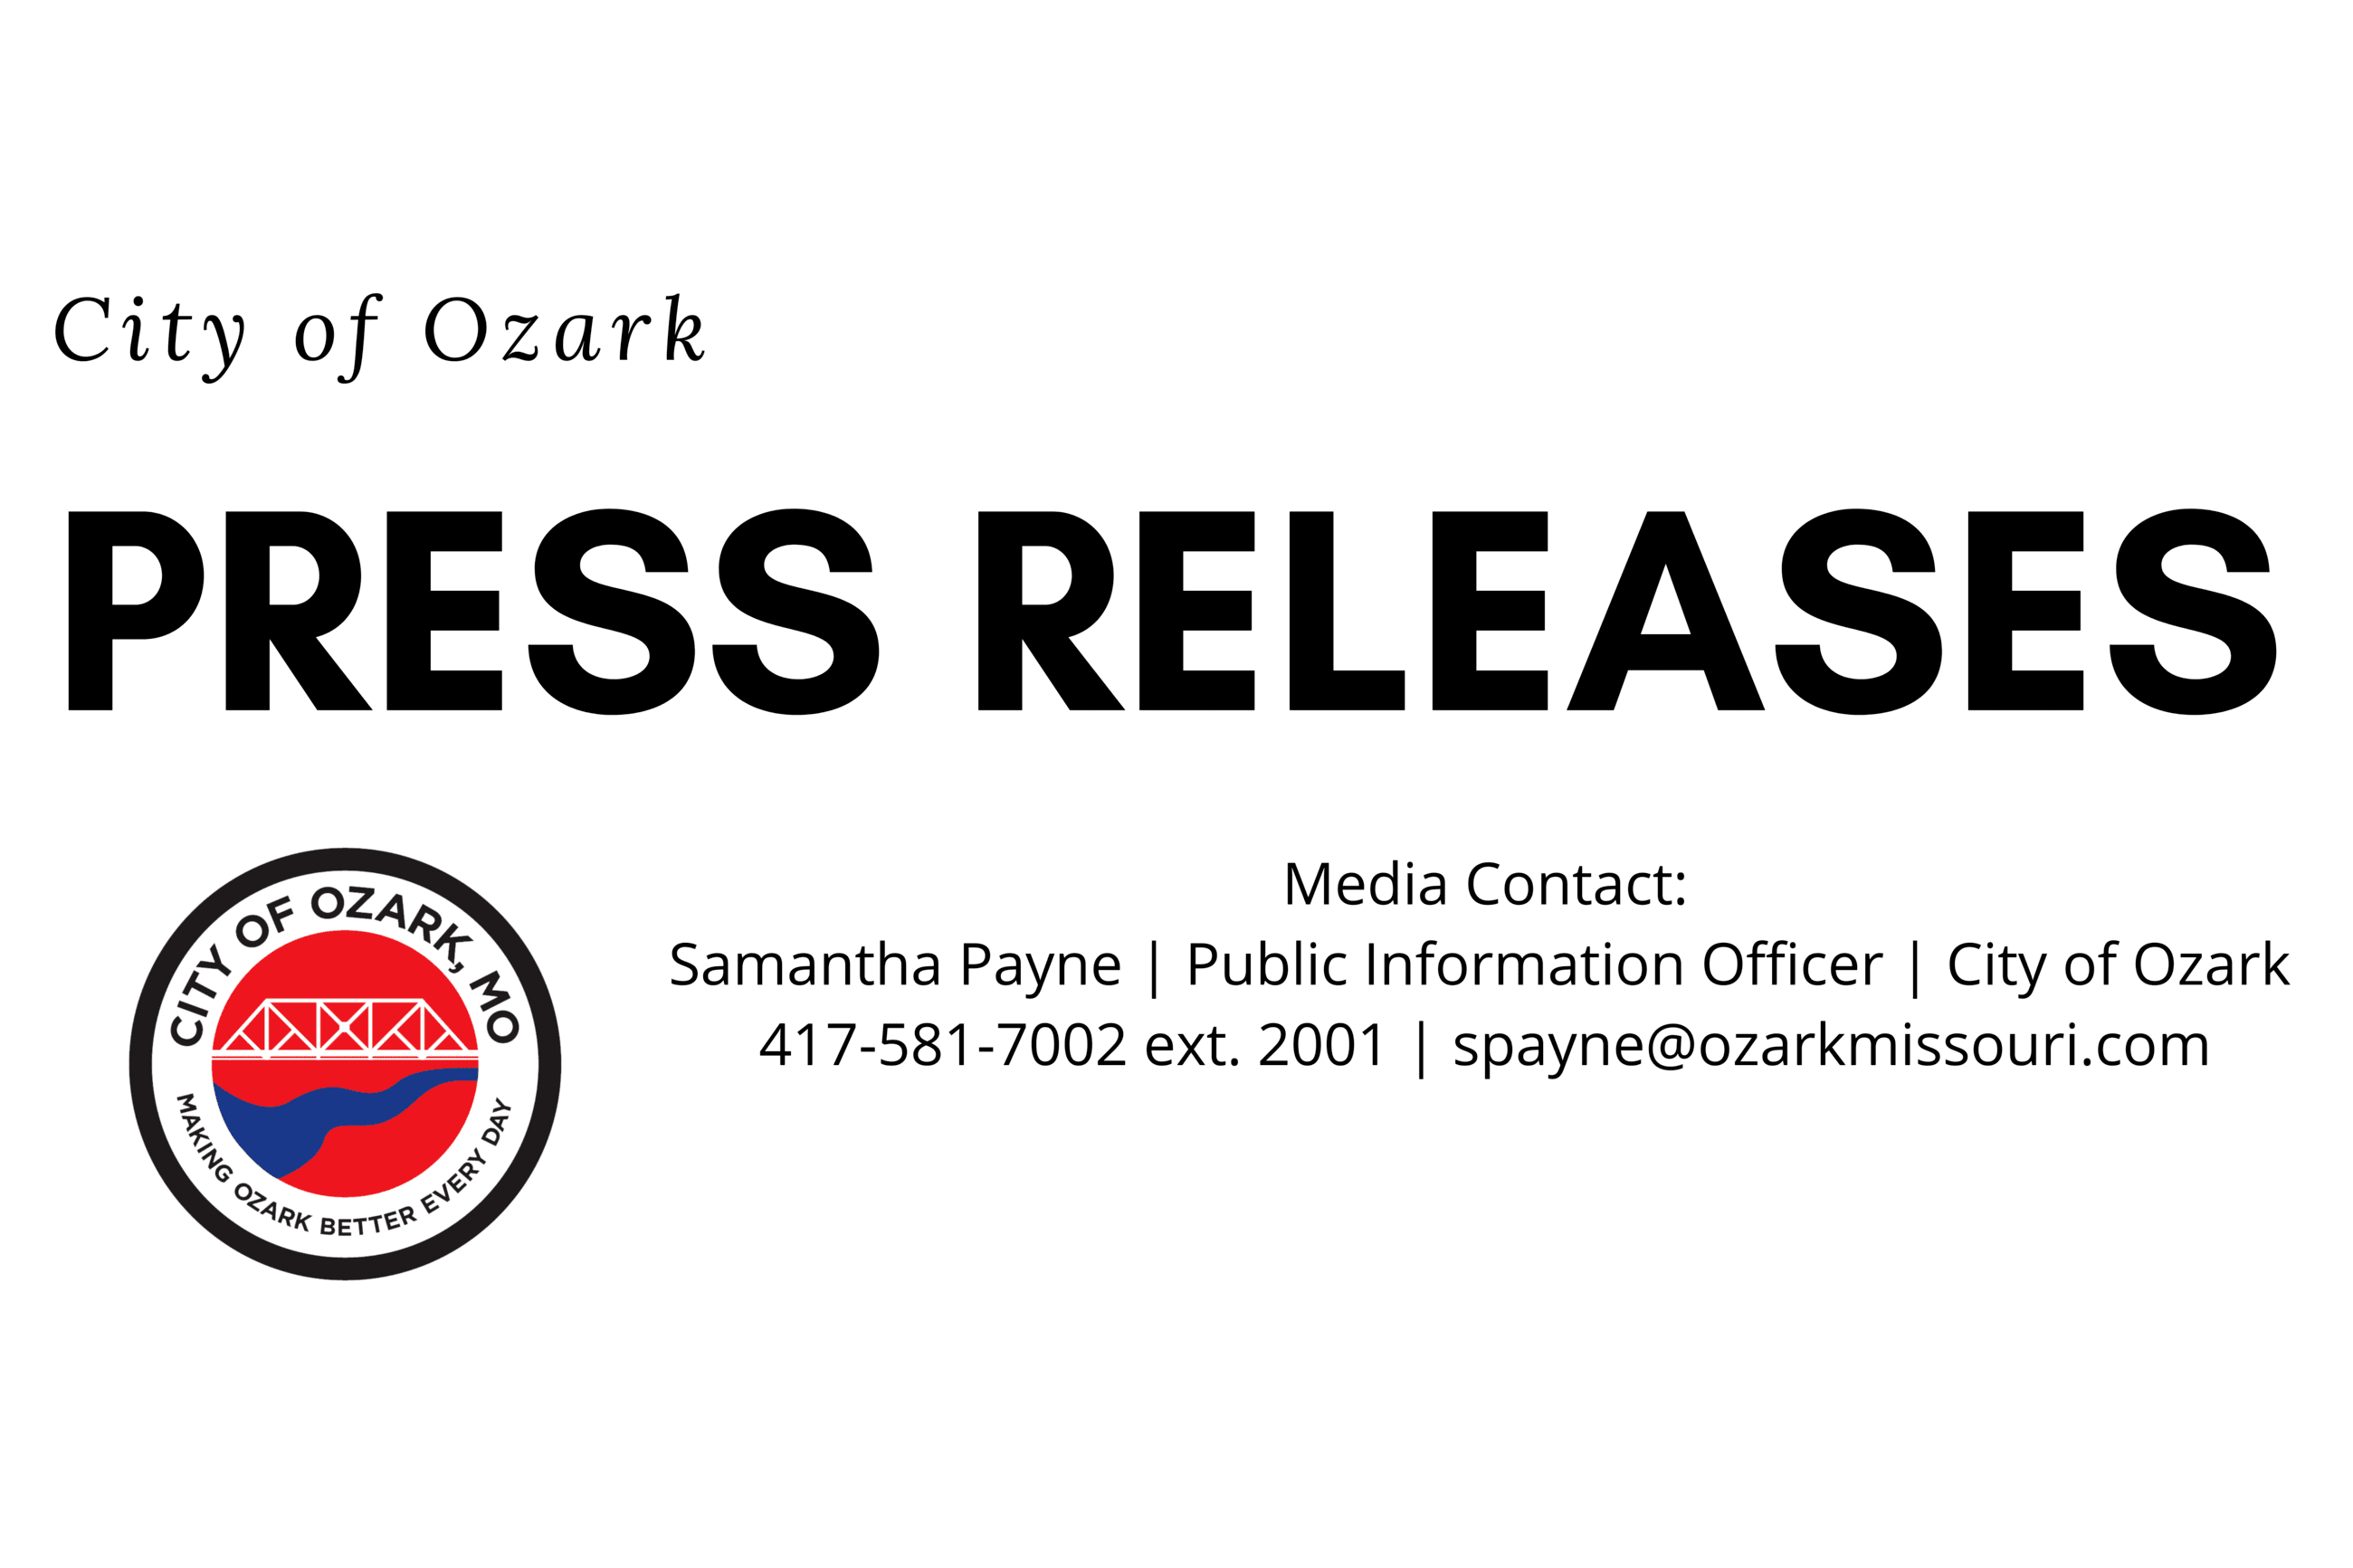 City of Ozark Press releases